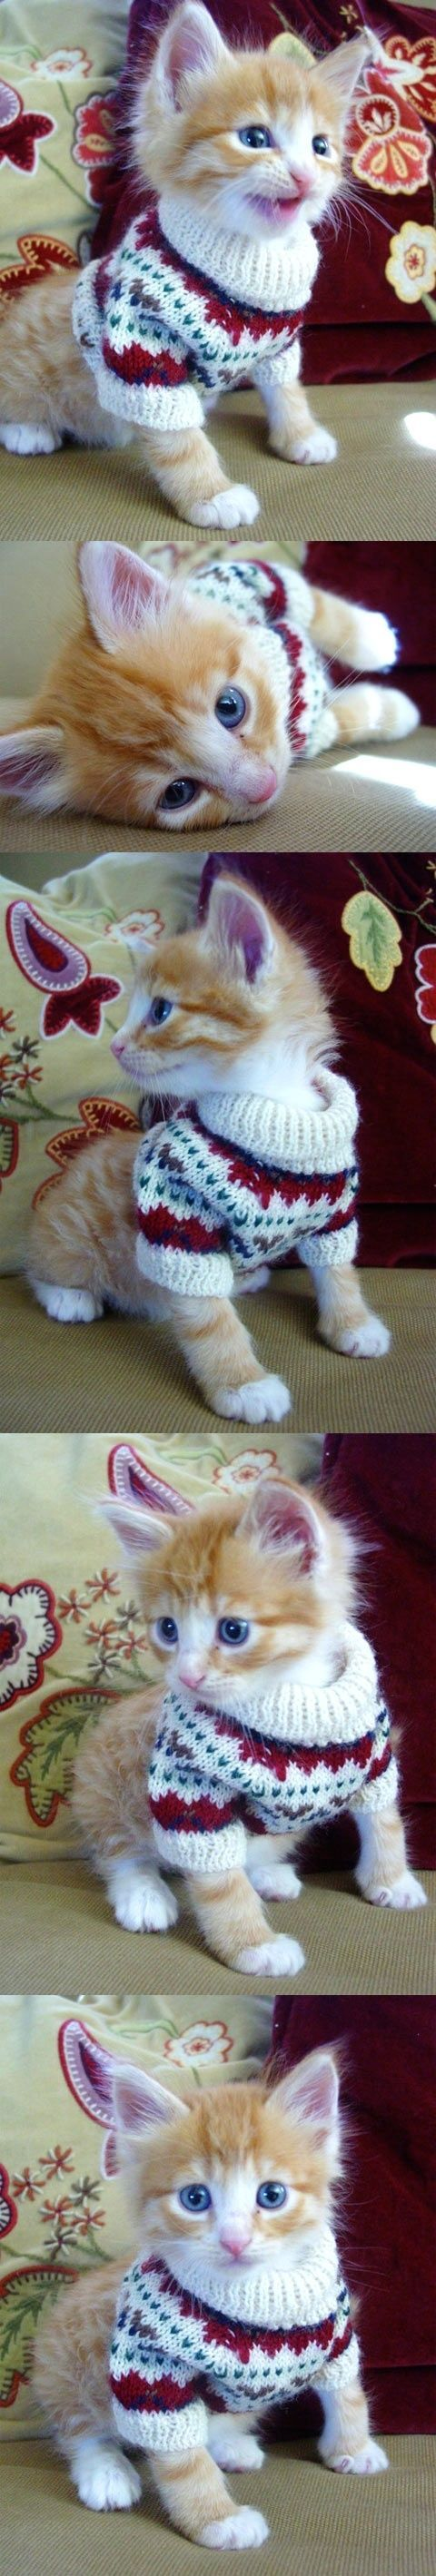 Does this sweater make me look fat?